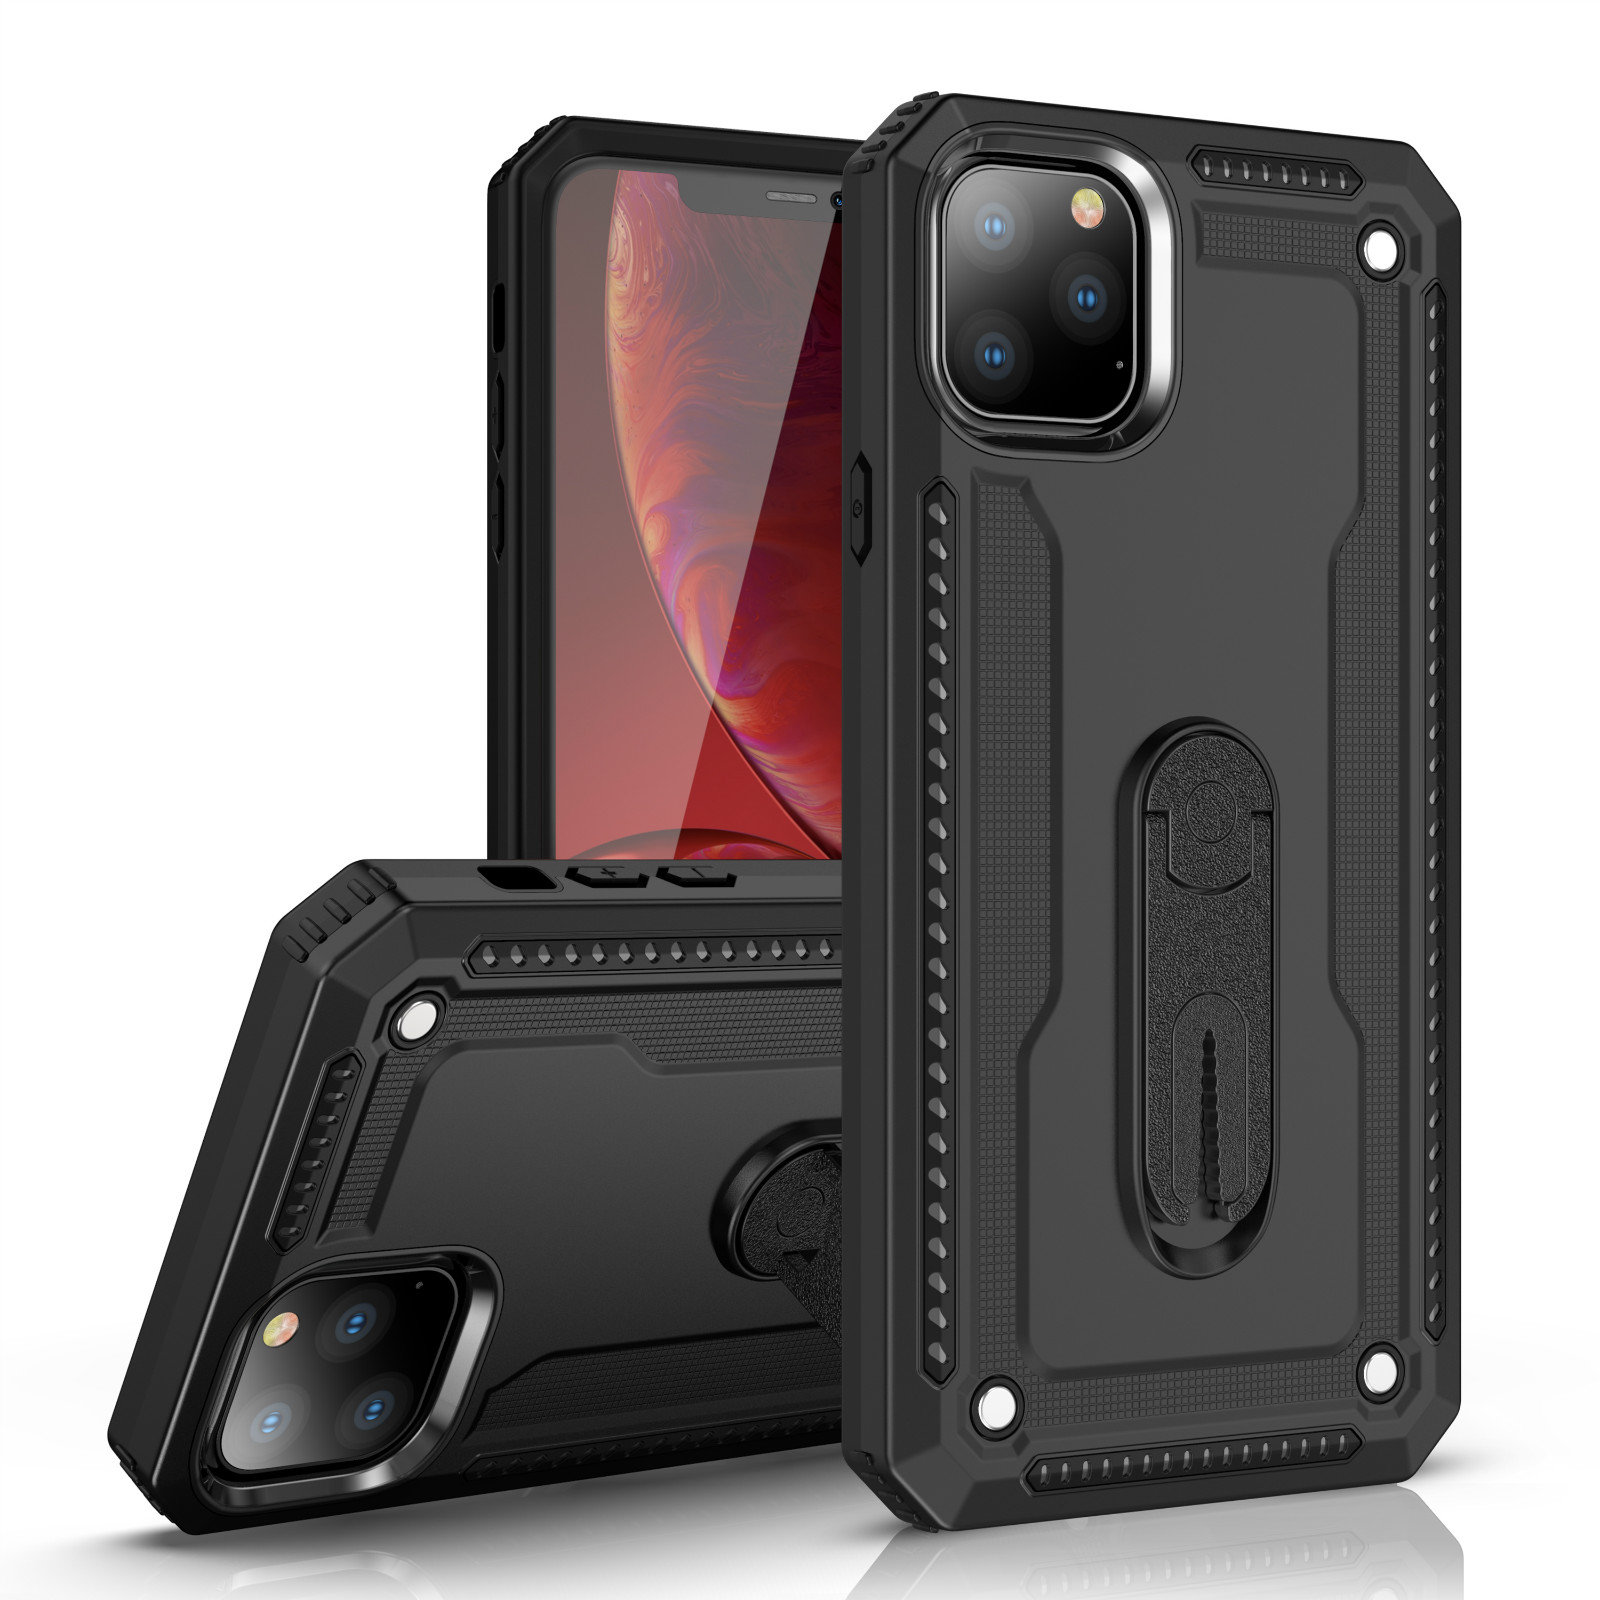 Magnetic Armor Holder <font><b>phone</b></font> <font><b>Case</b></font> for <font><b>OPPO</b></font> F5 Youth A79 A37 Neo 9 A59 F1S F3 A77 <font><b>A71</b></font> A39 A57 F7 A7 A5S A3S A5 F9 Back Cover <font><b>Case</b></font> image